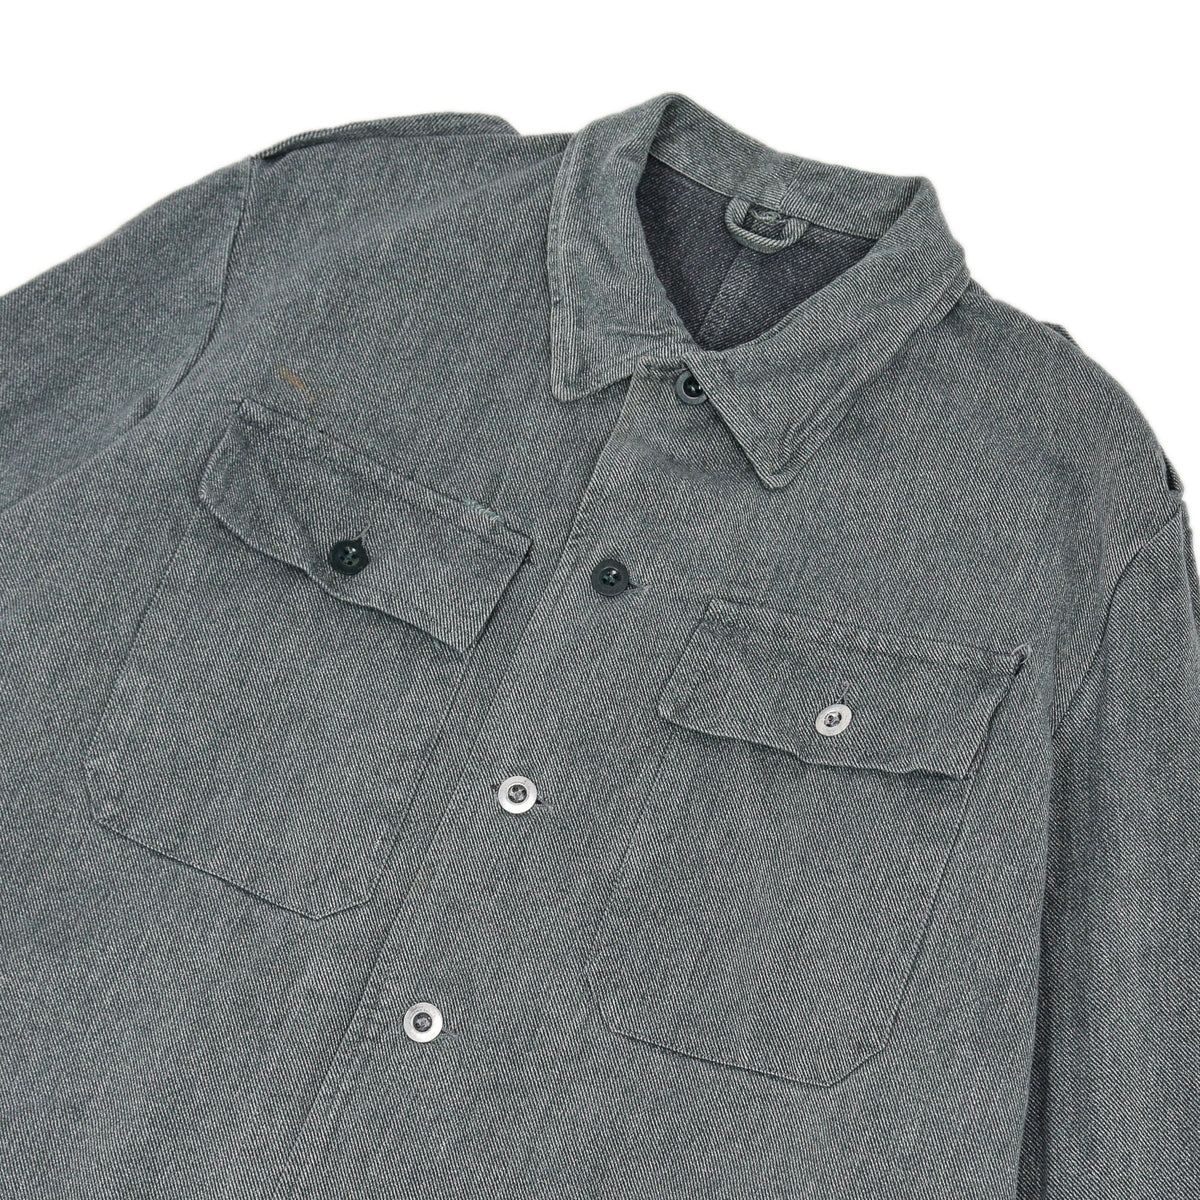 Vintage 60s Swiss Army Salt & Pepper Denim Worker Chore Jacket L chest